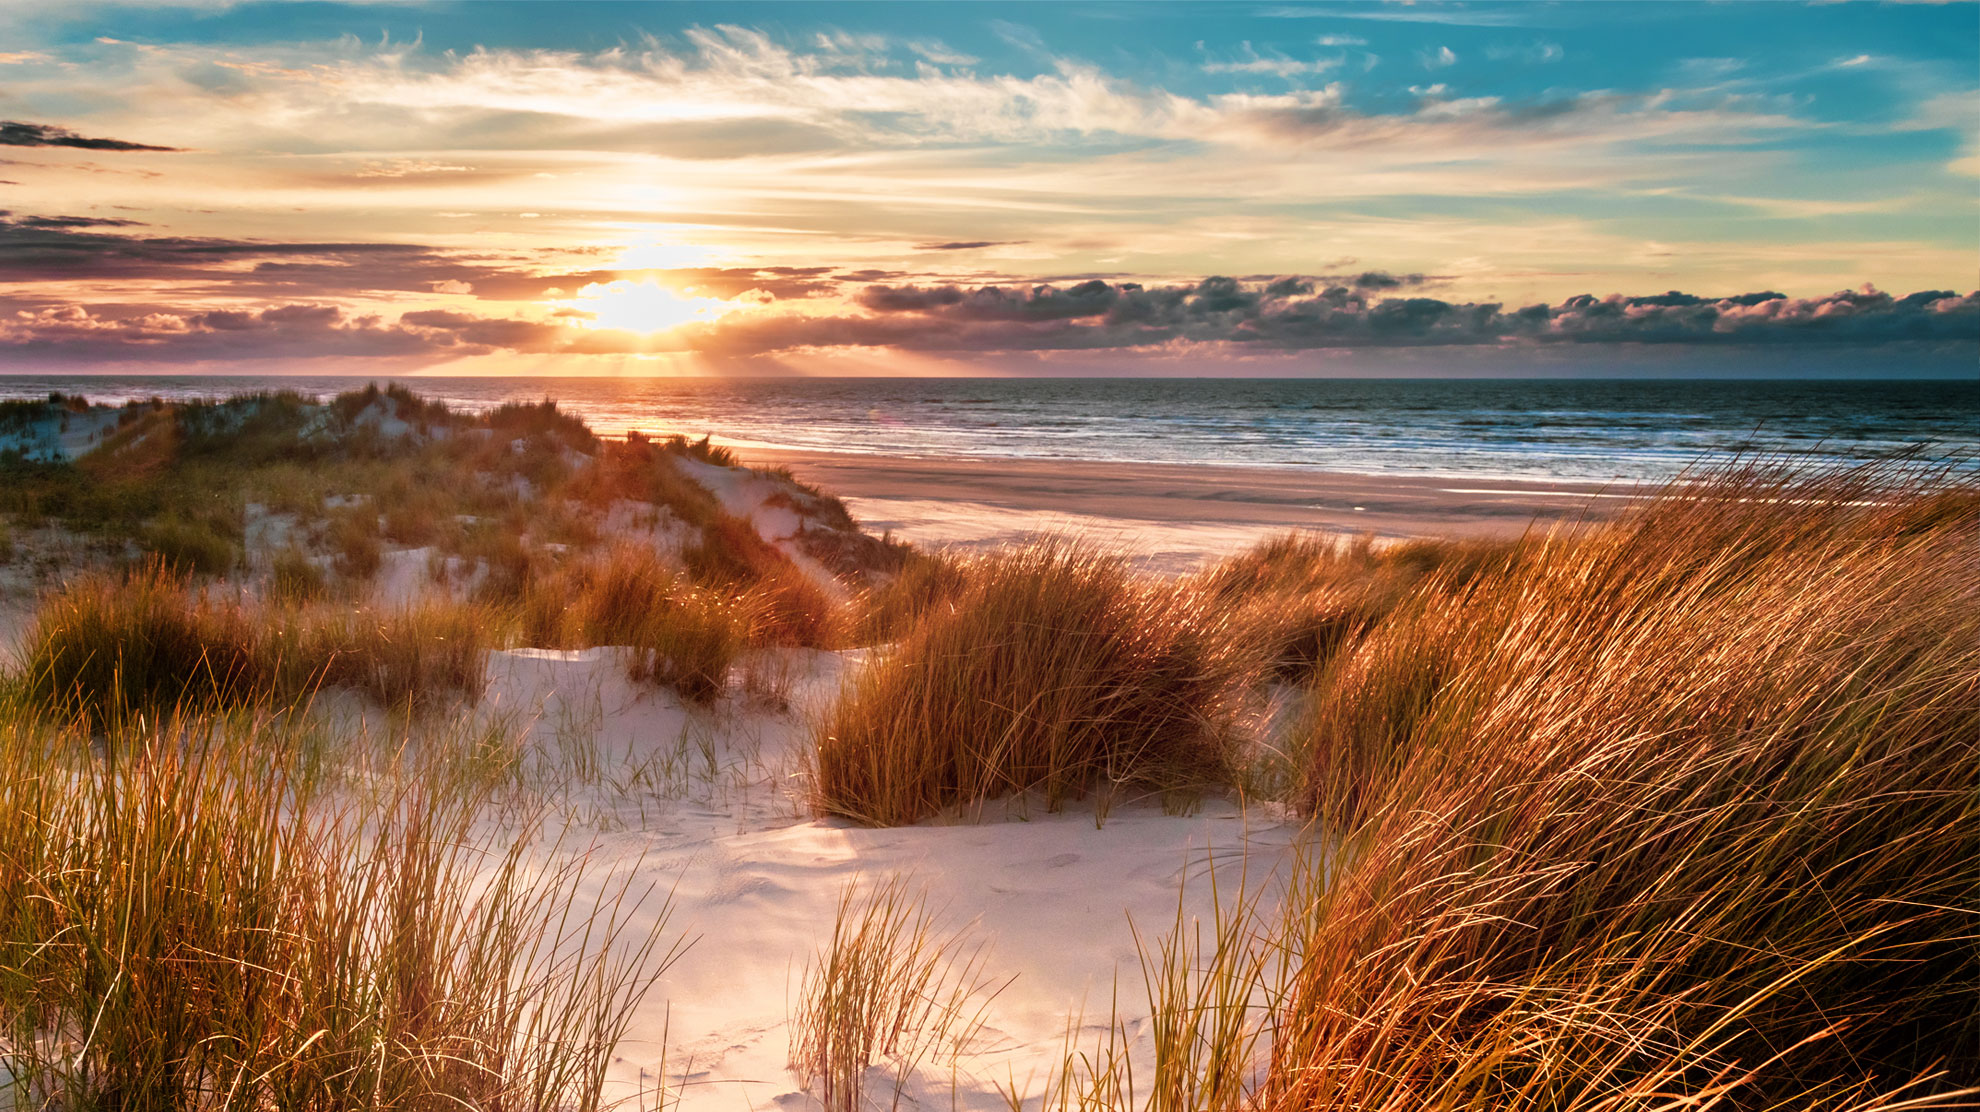 Dynamic Dunescapes aims to foster our dunes